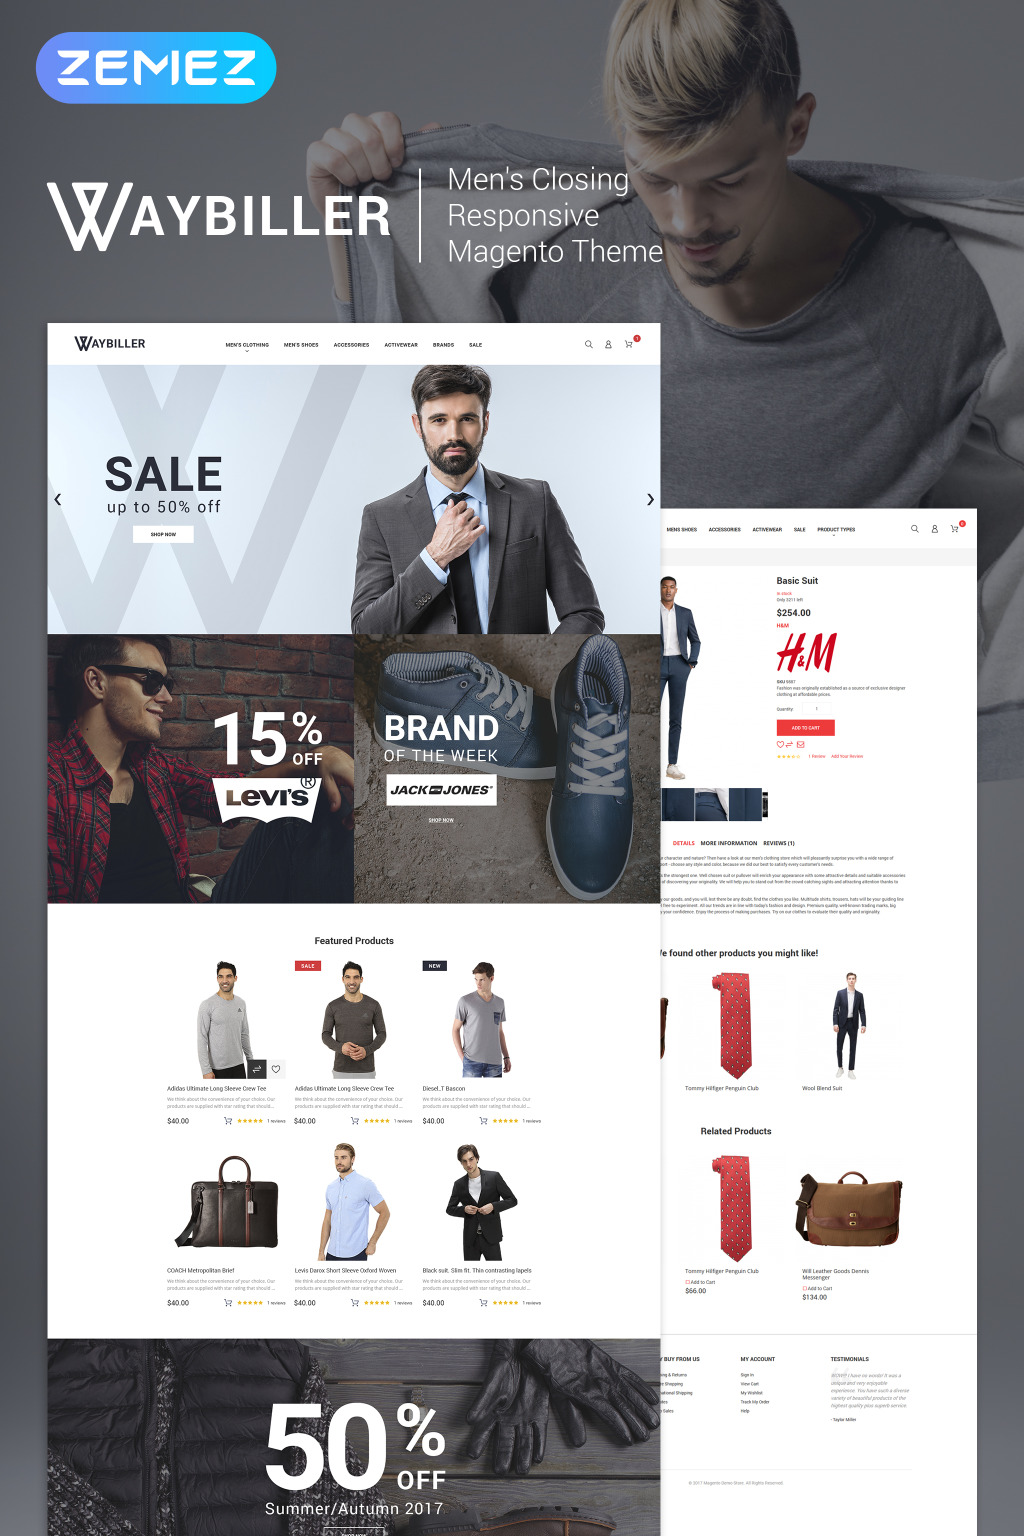 Waybiller - Men's Closing Magento Theme New Screenshots BIG